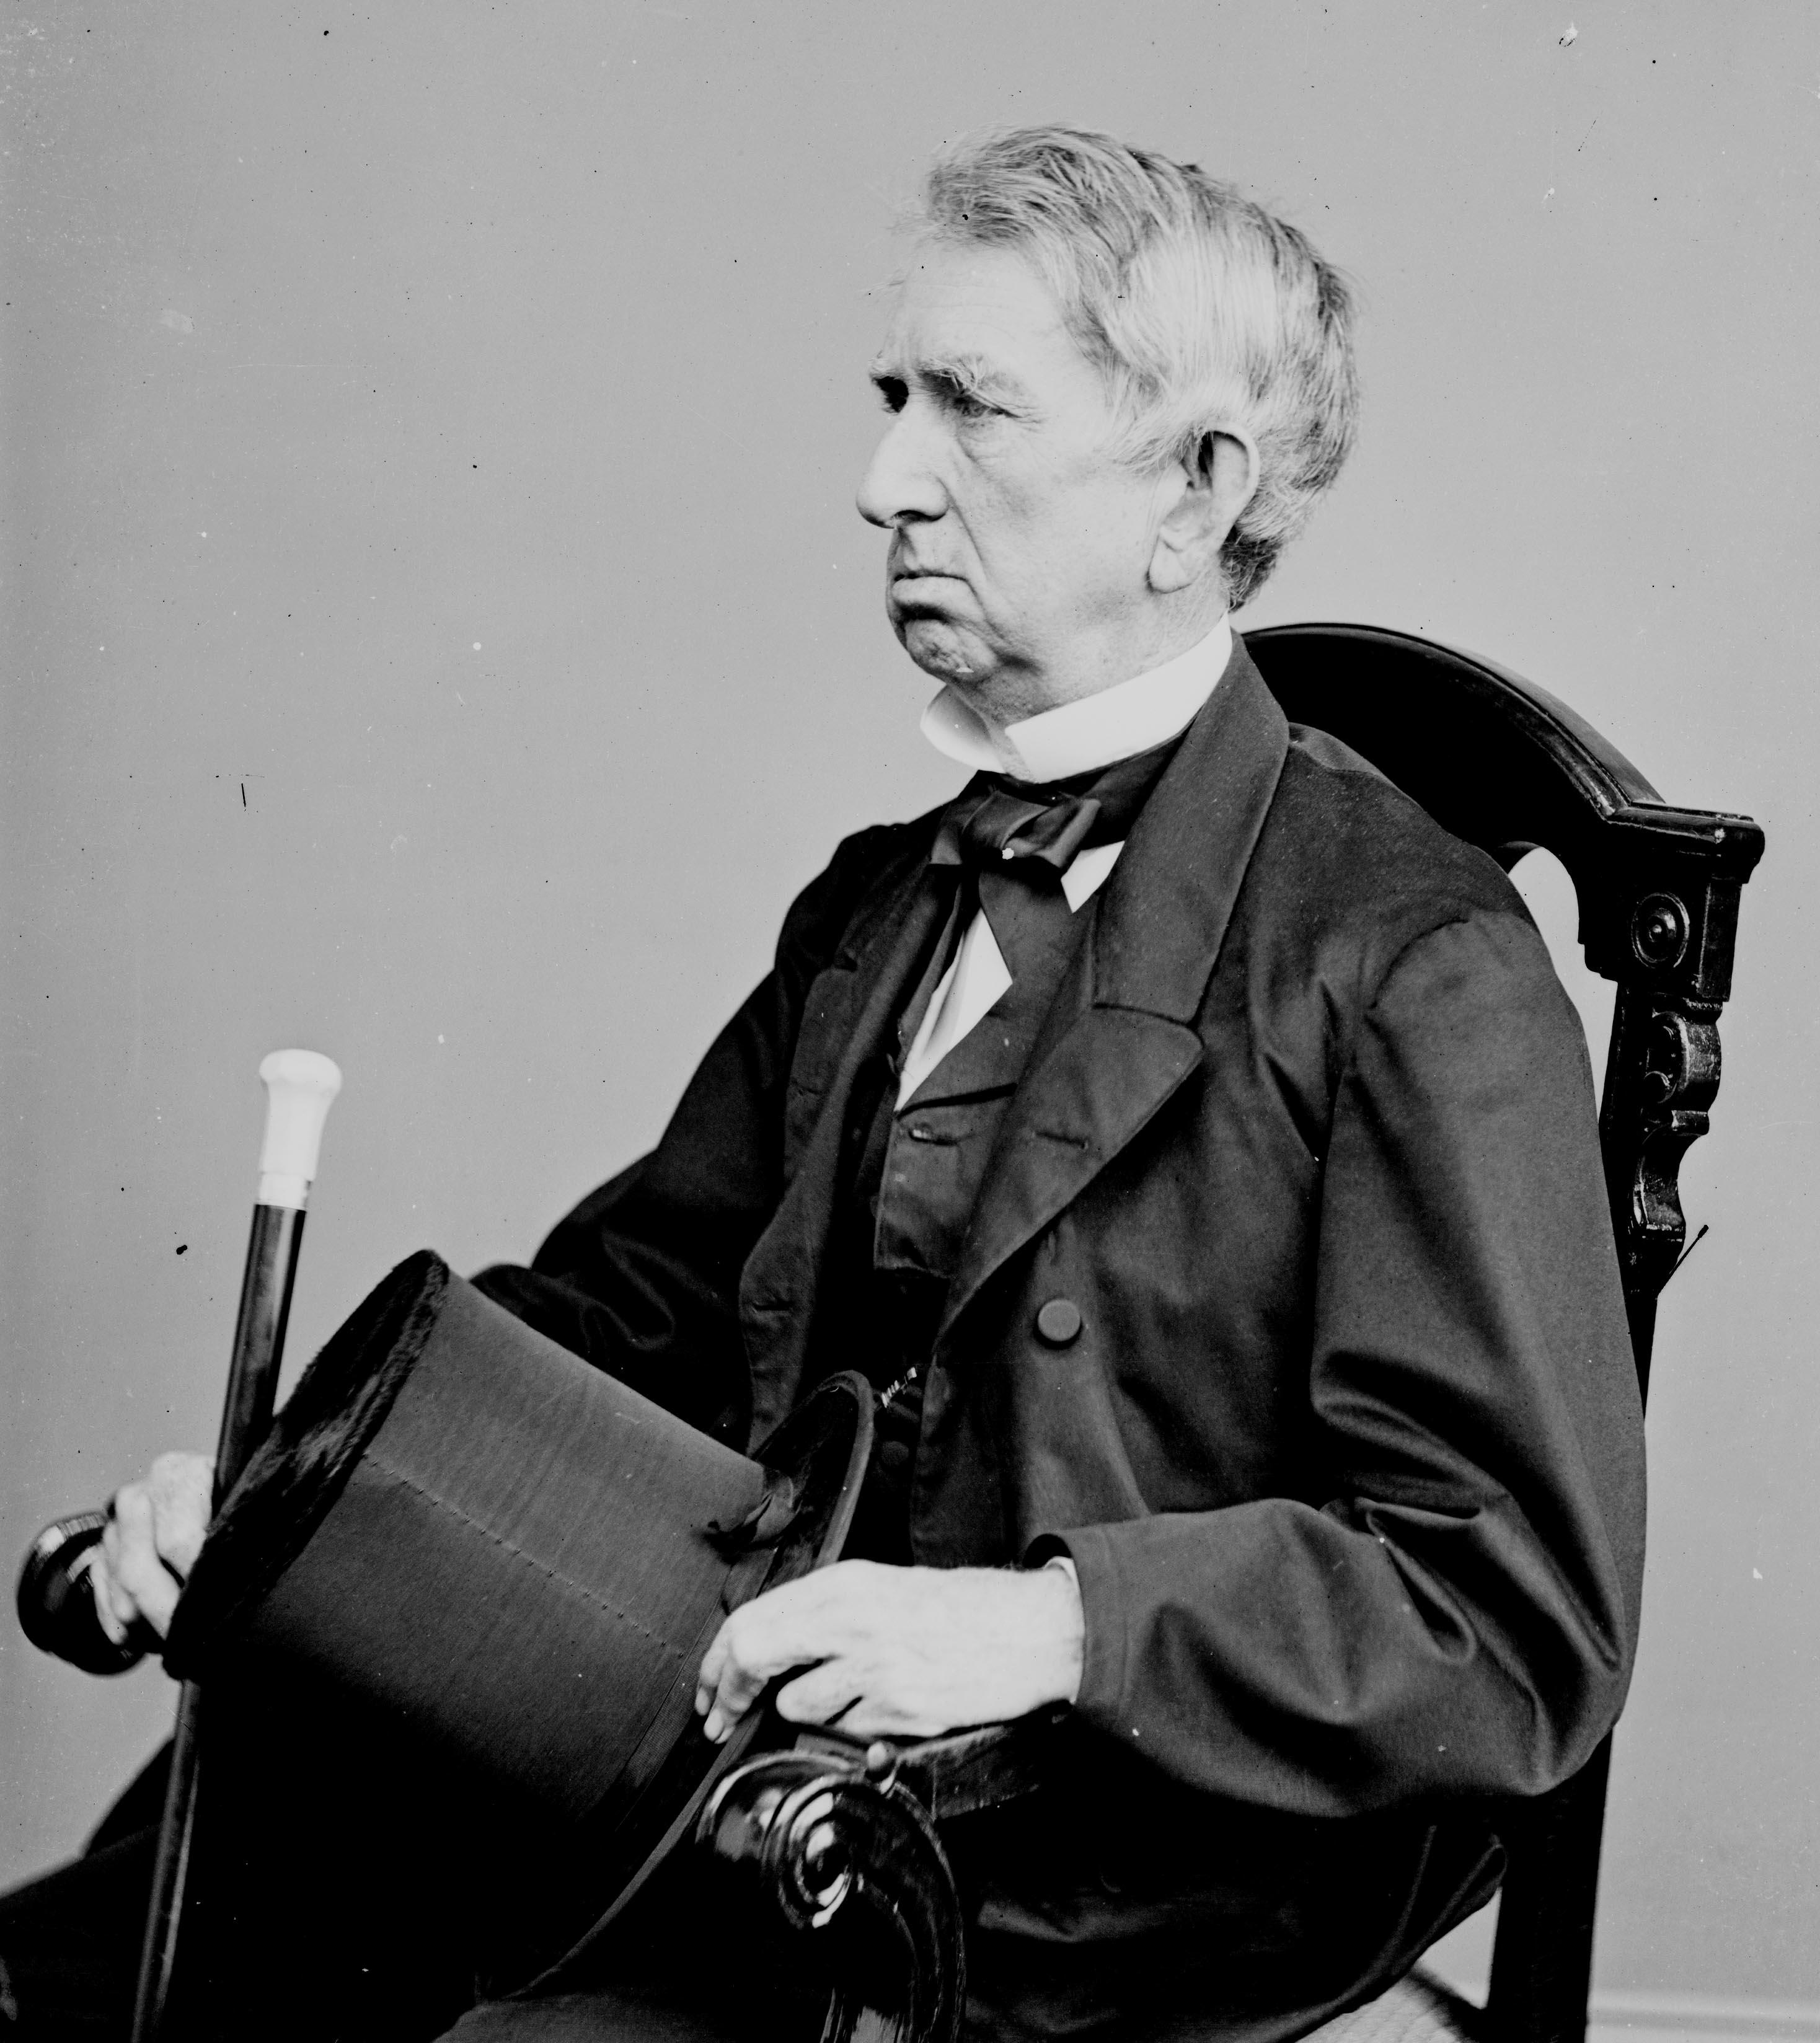 Secretary of State, William Seward circa 1860-1865